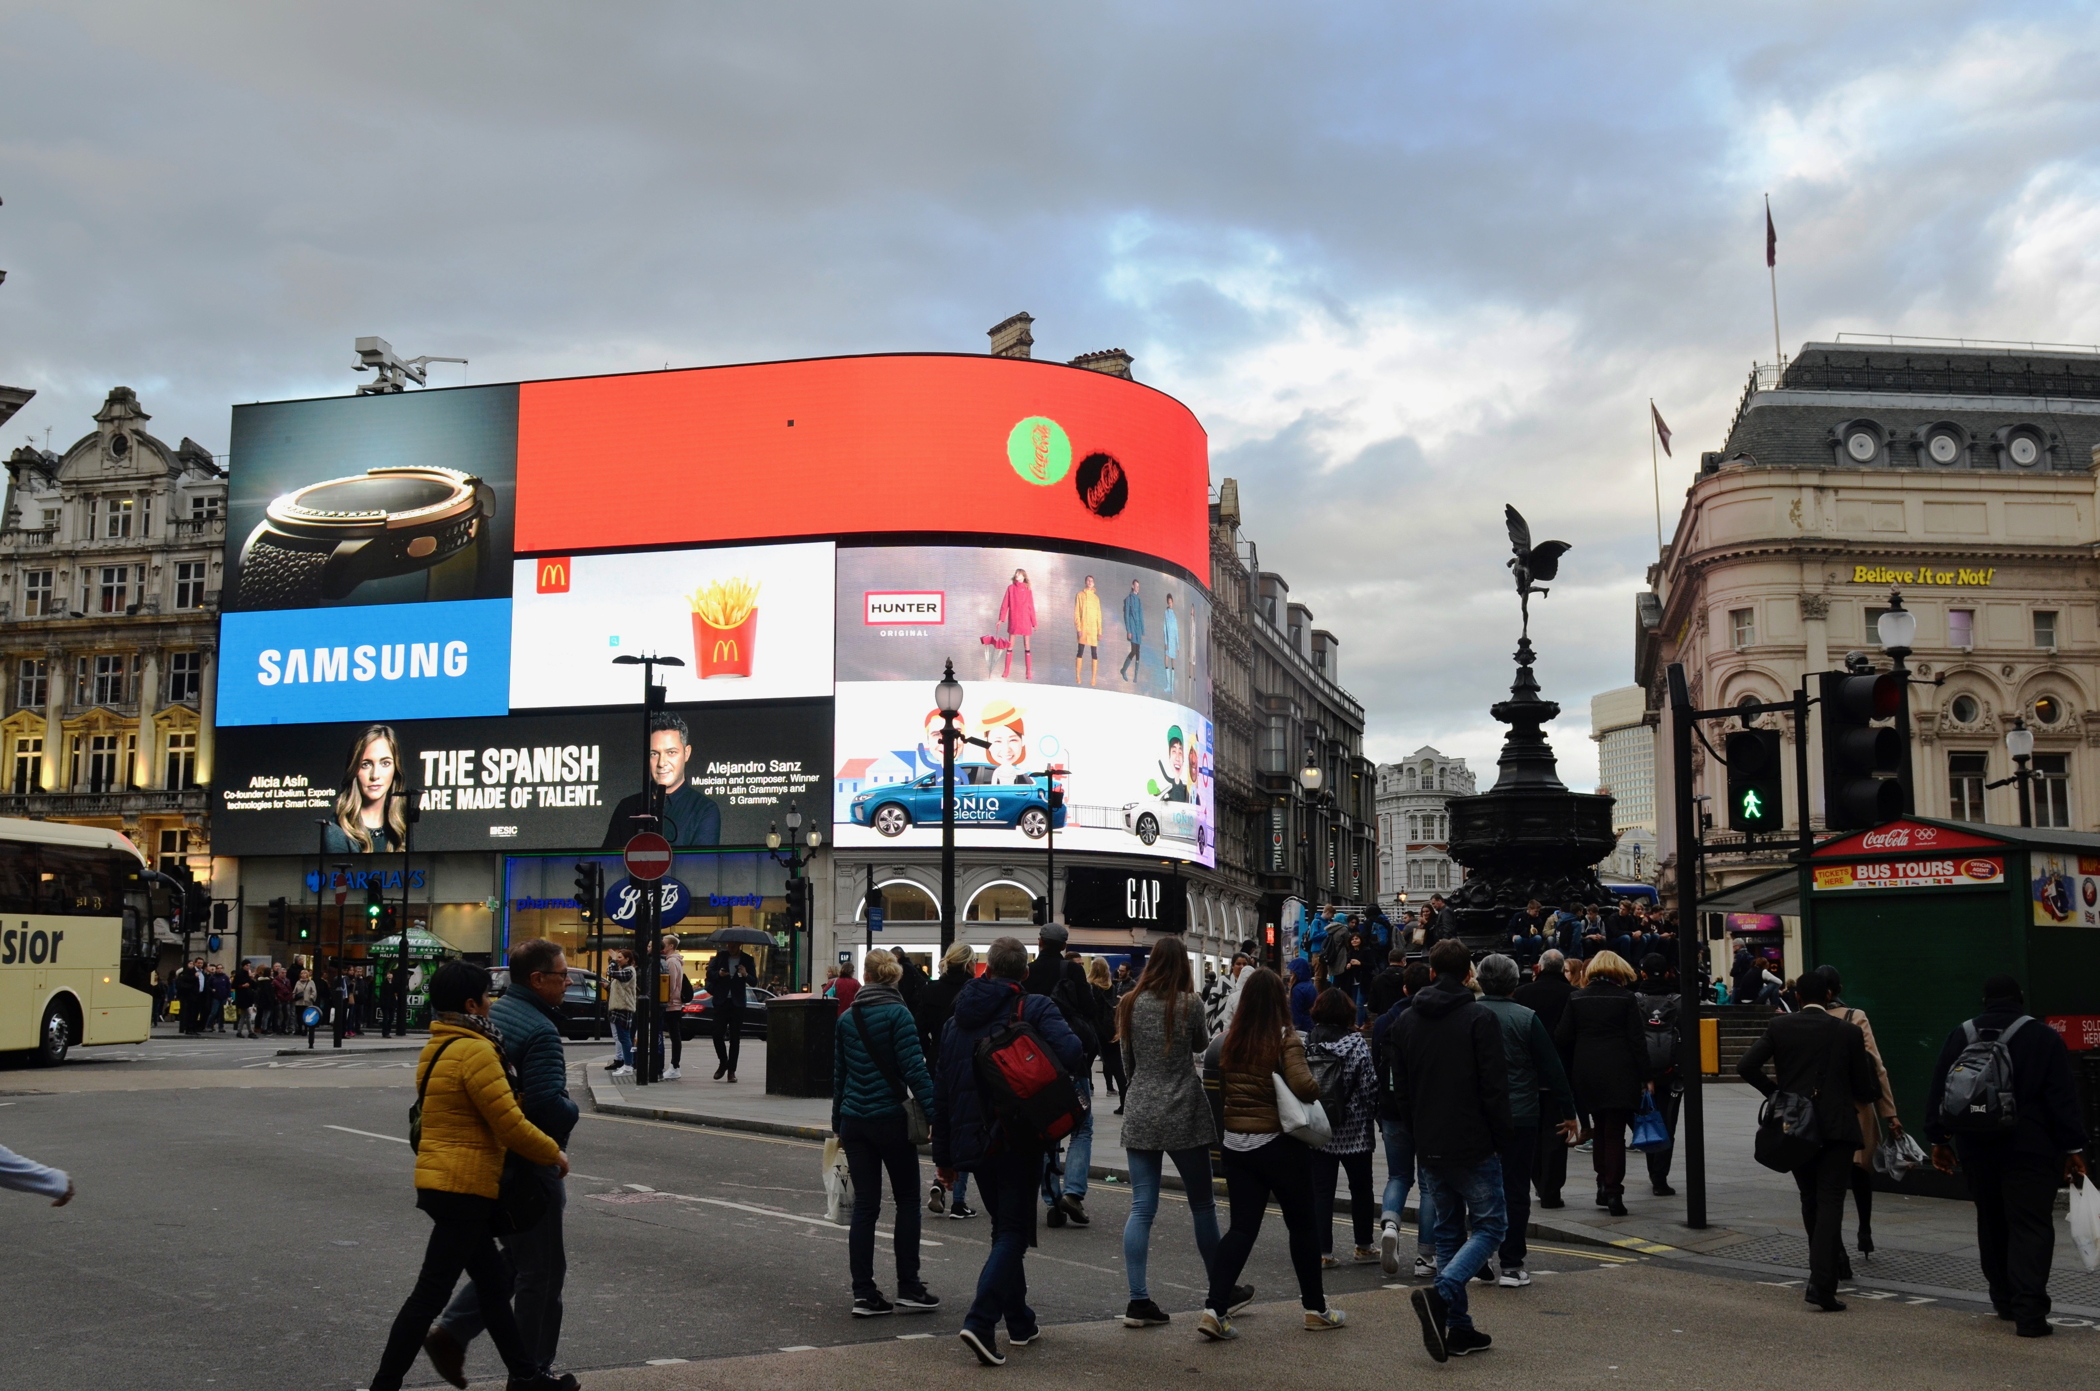 Swinging London Piccadilly Circus